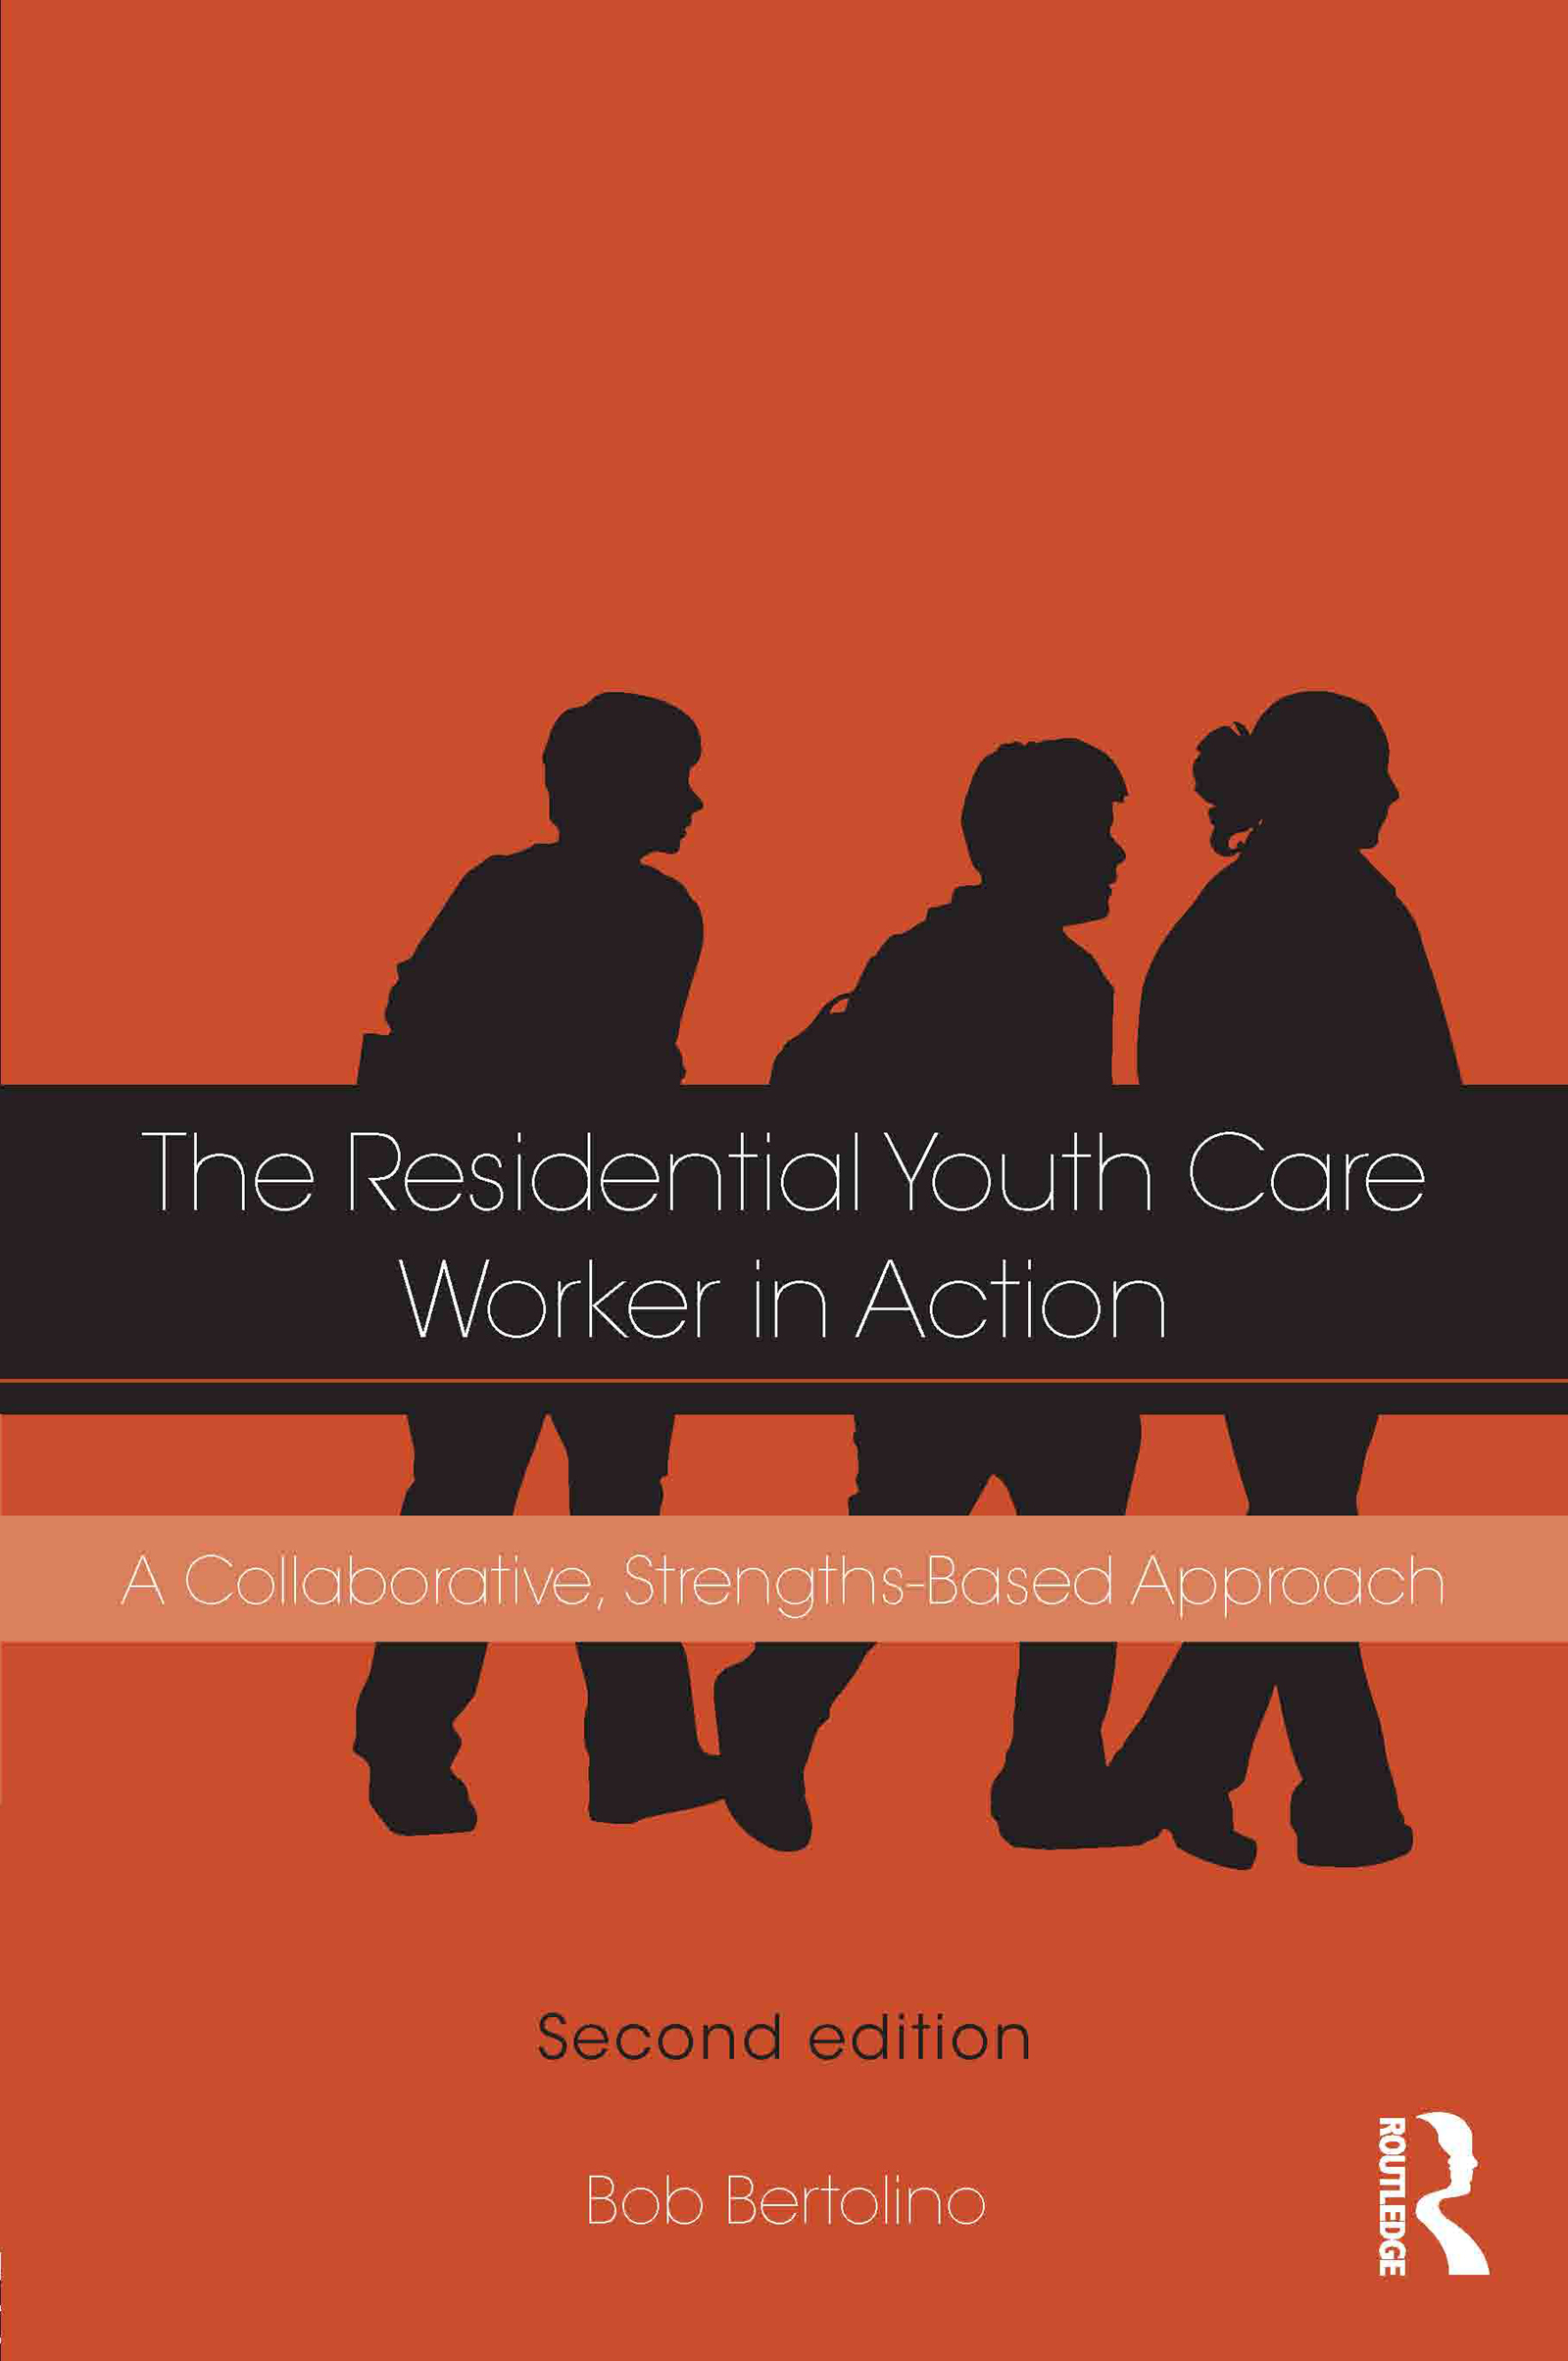 The Residential Youth Care Worker in Action